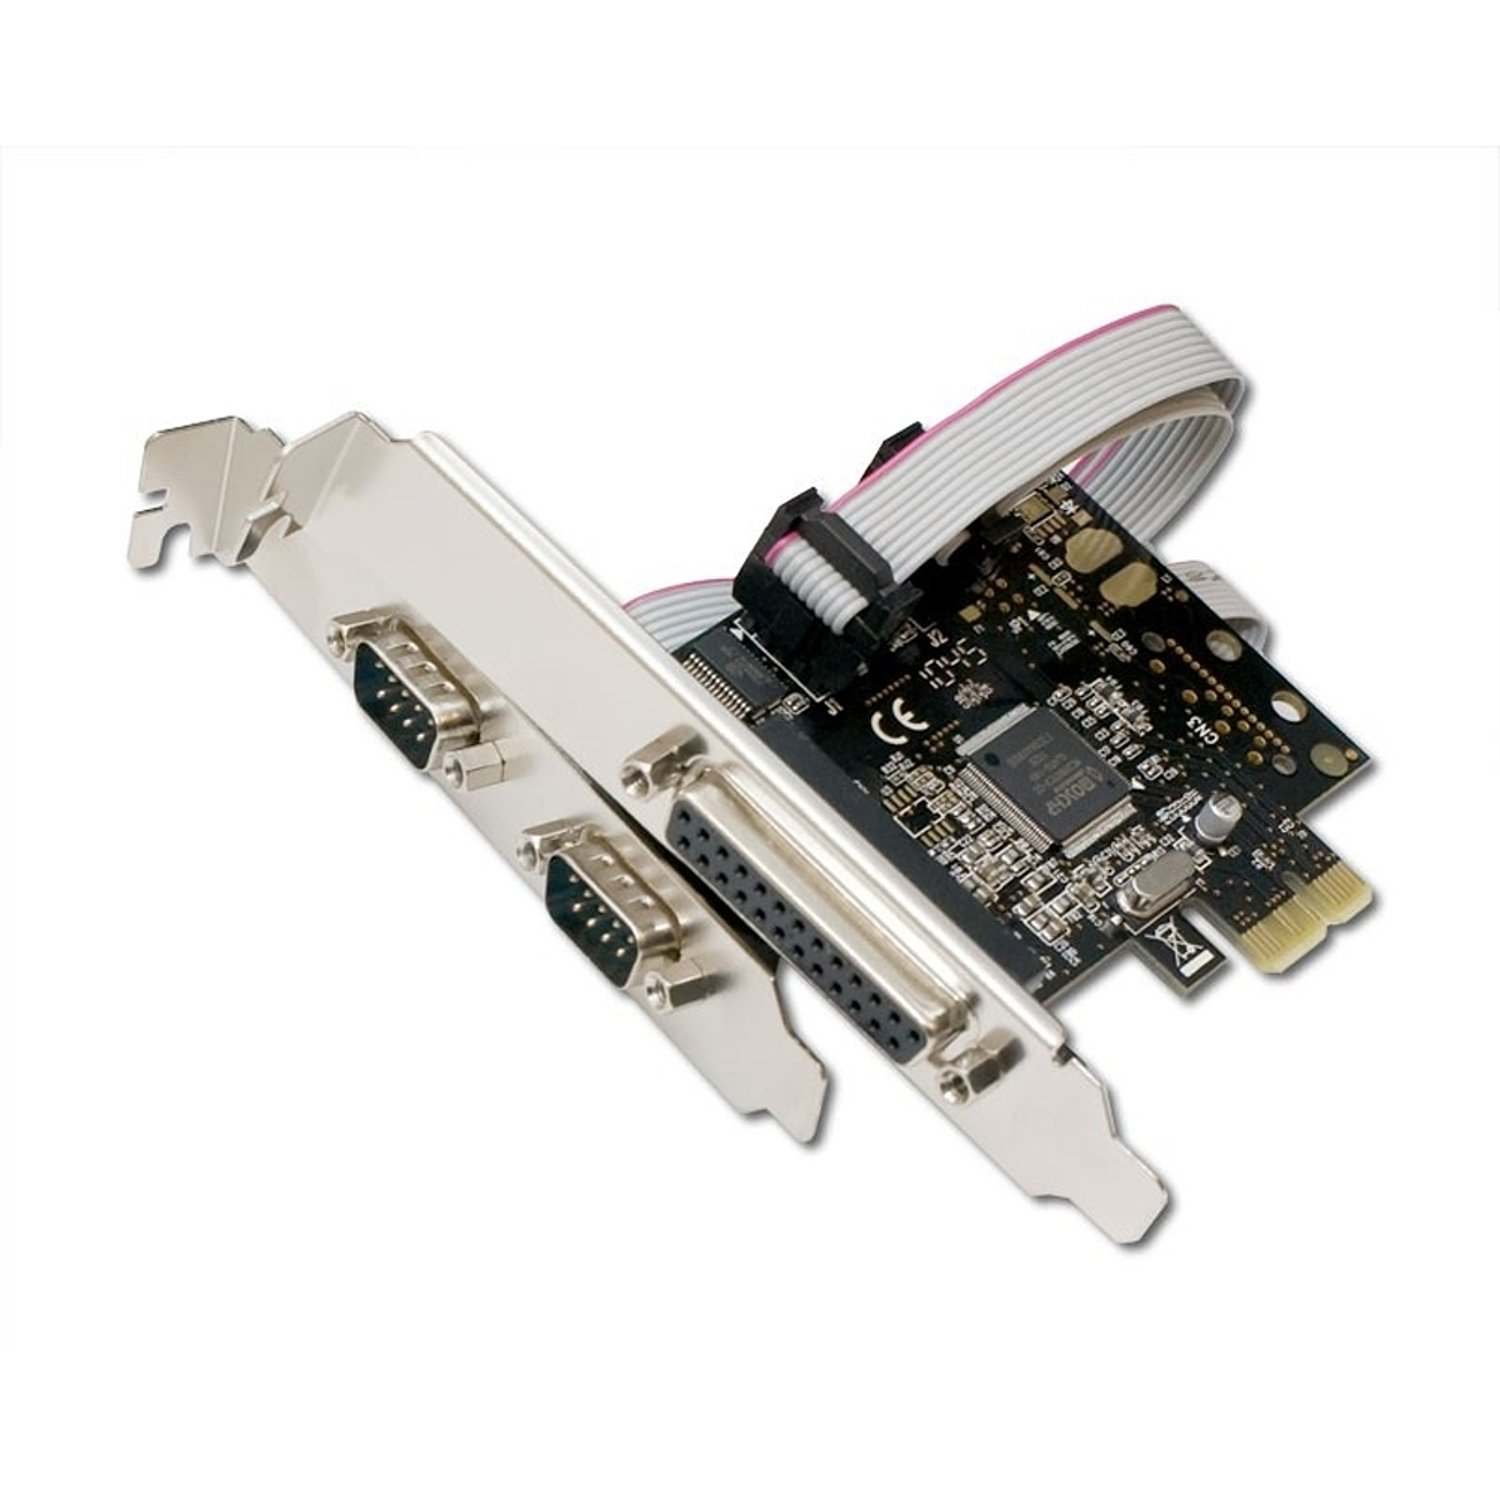 Amazon.com: SYBA – Tarjeta IO sd-pex50030 2 x port Serial/1 ...